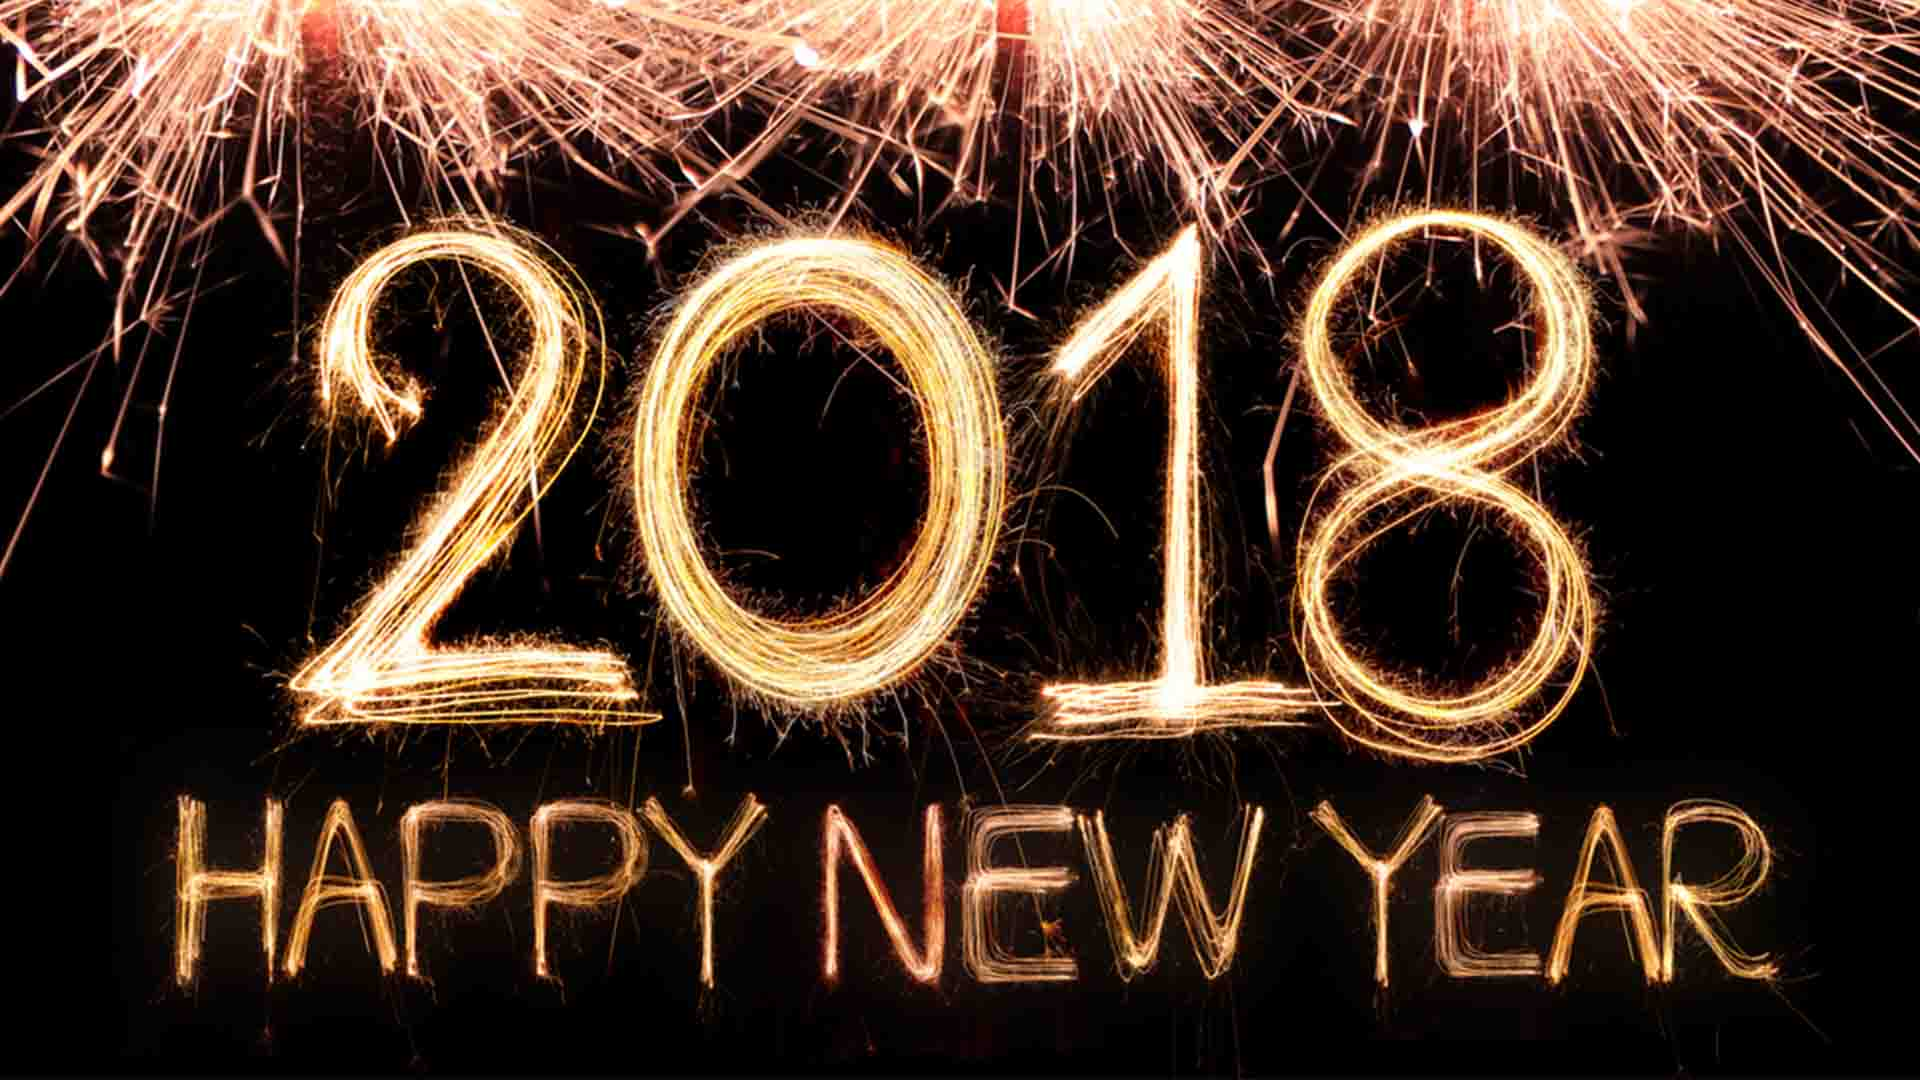 https://i0.wp.com/www.9to5carwallpapers.com/wp-content/uploads/2017/09/Happy-New-Year2018.jpg